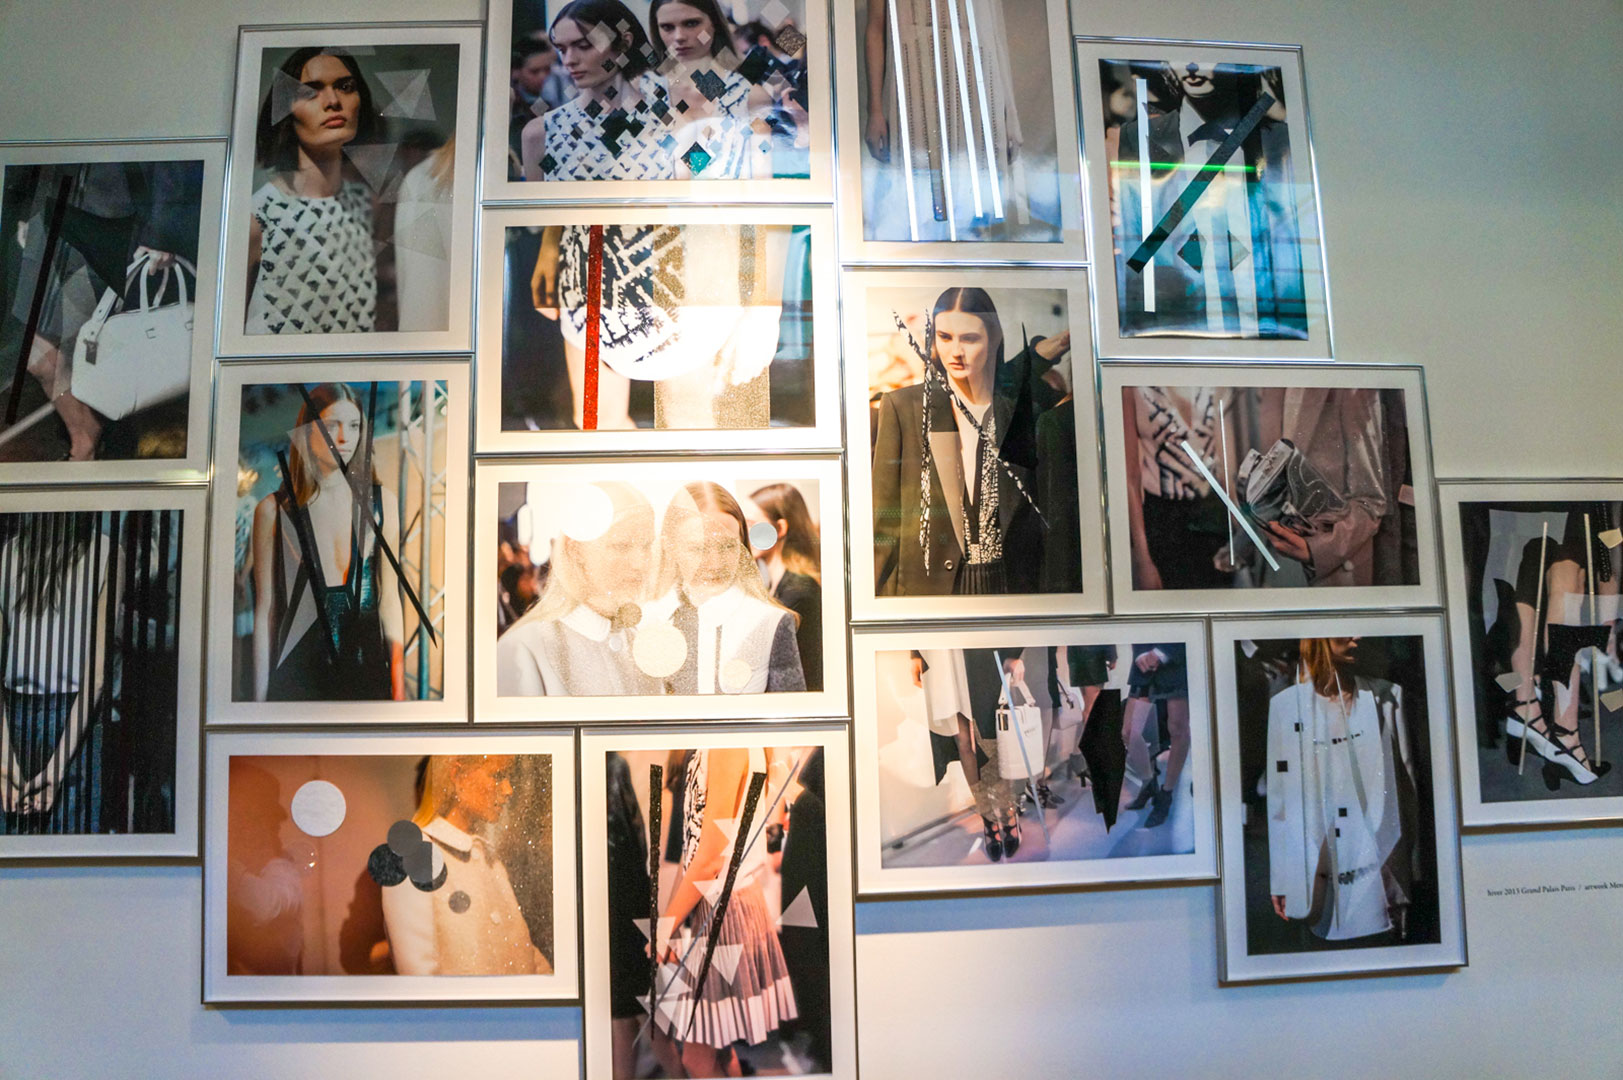 my-paris-fashion-week-diary-paris-by-polina-paraskevopoulou-all-rights-reserved-10